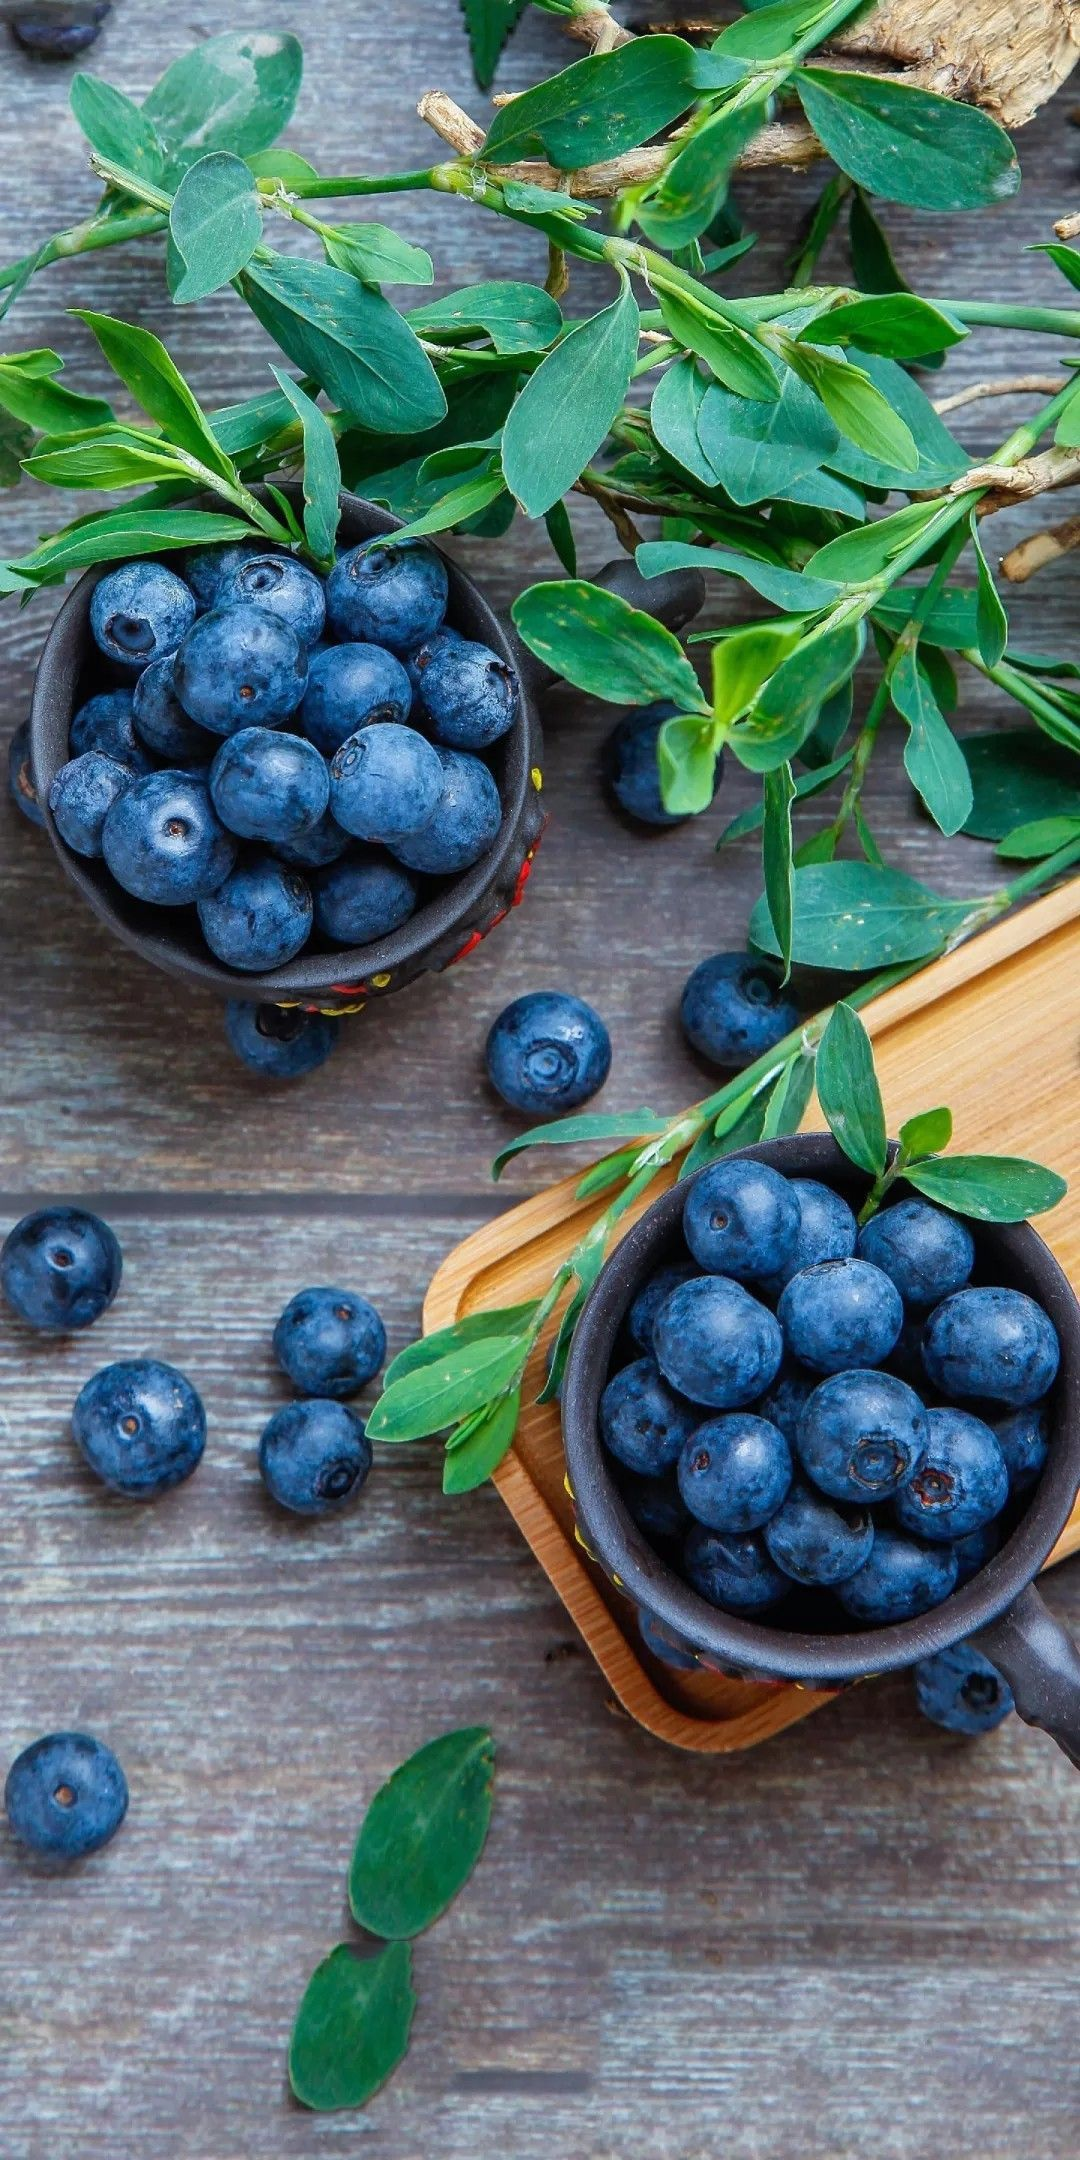 Pin by April ☔️ on BLUEBERRY LANE Healthy fruits